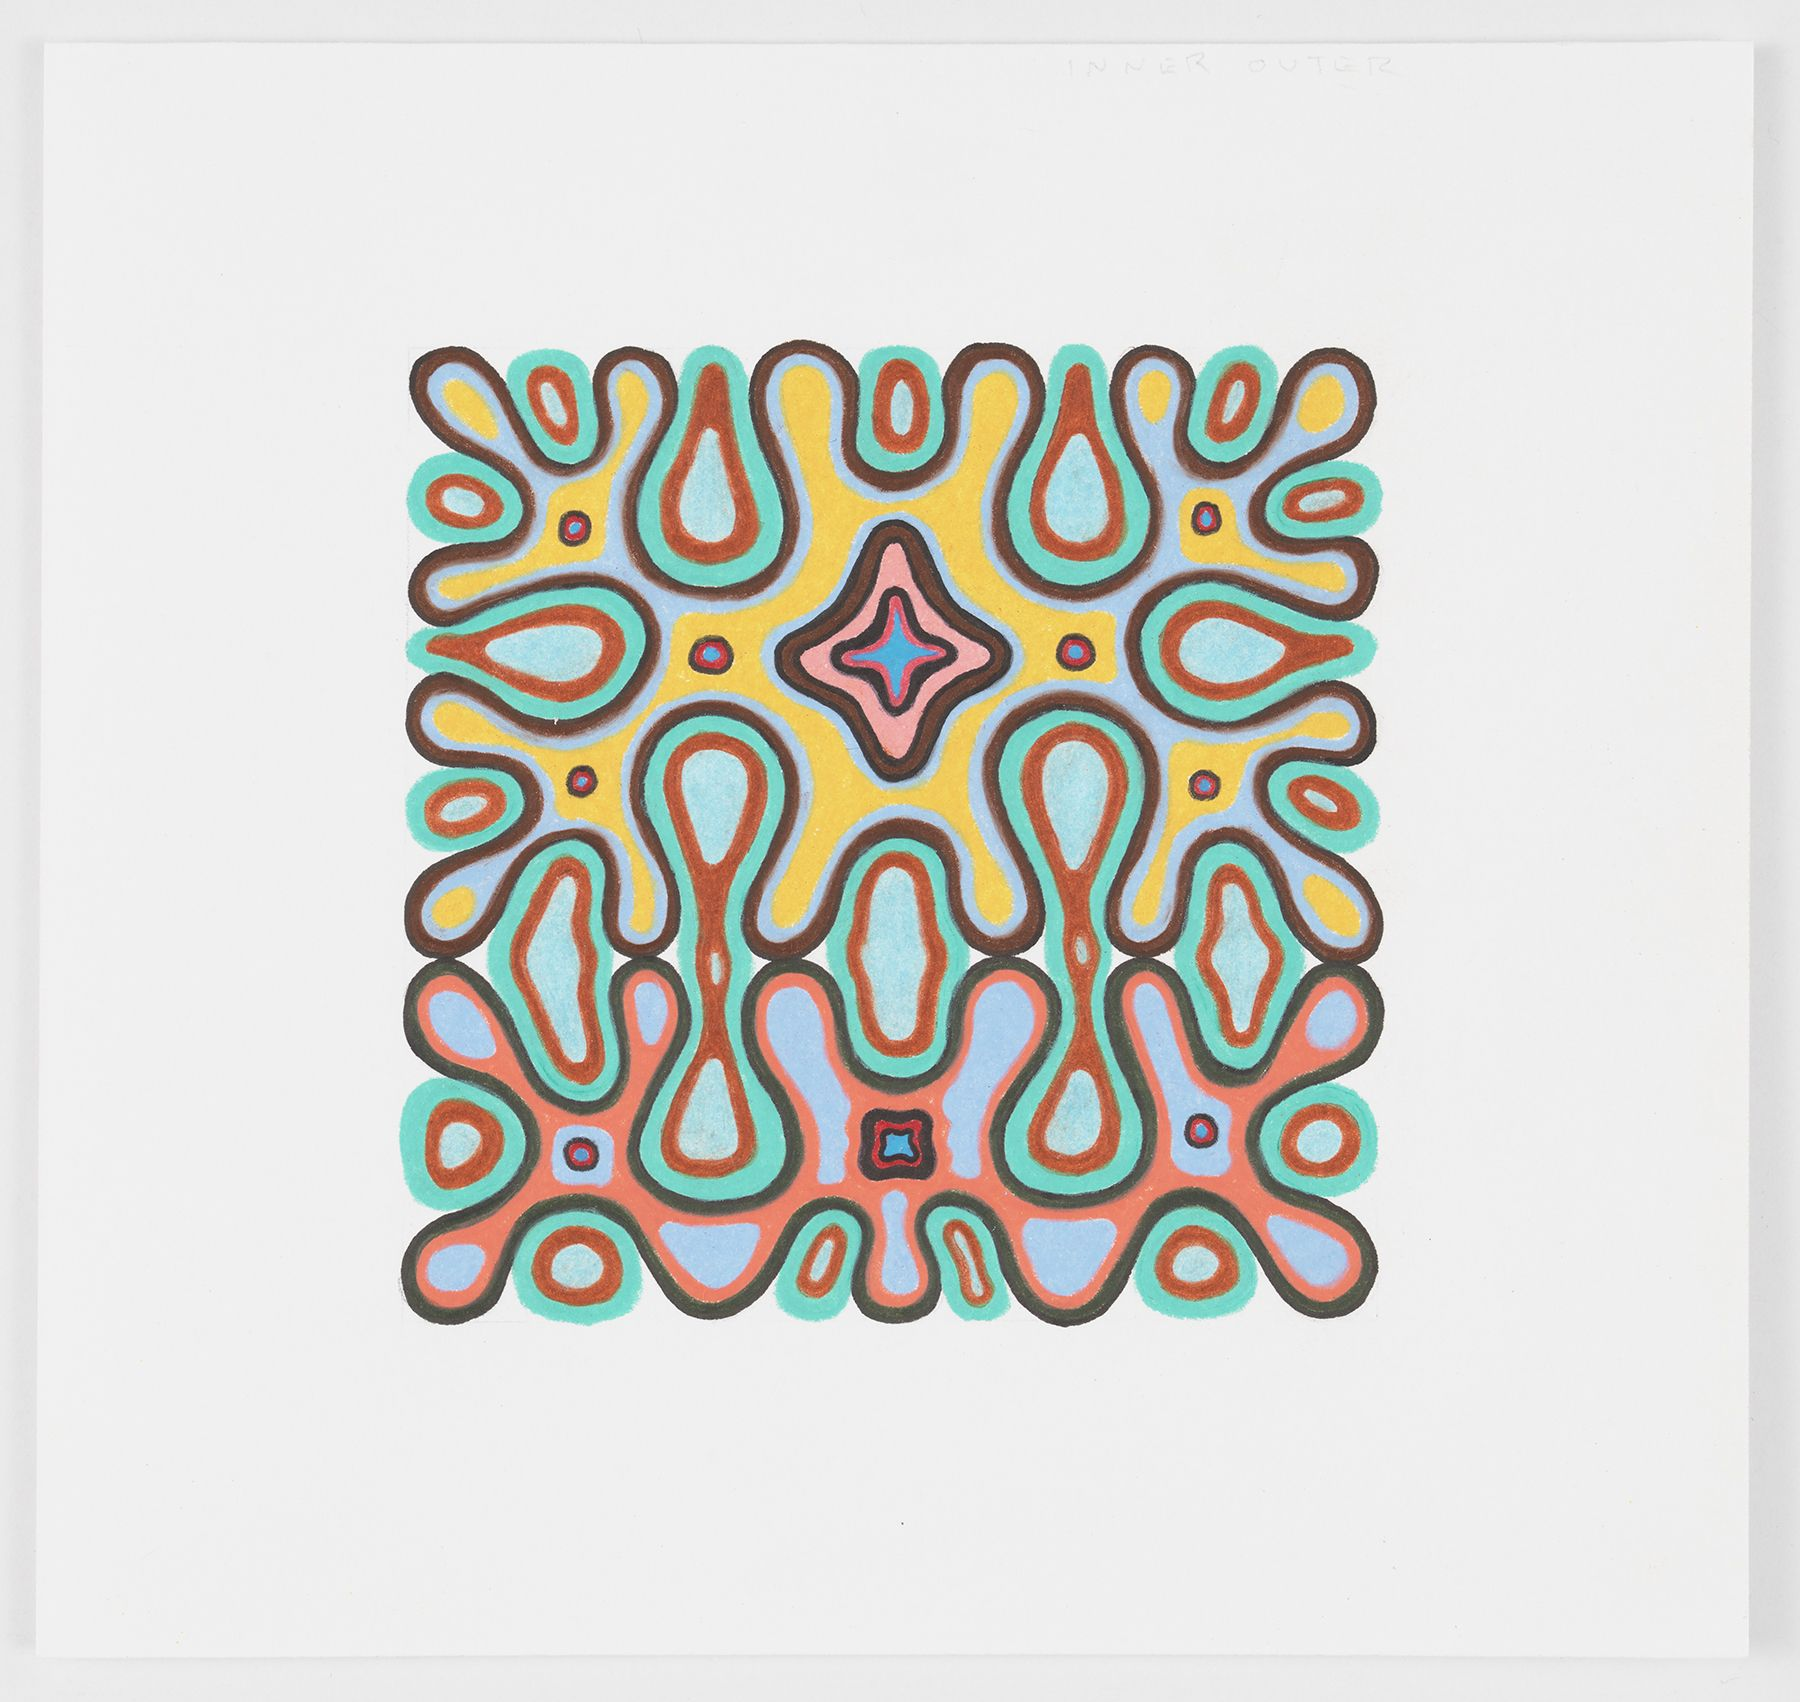 Inner Outer, 2018,Colored pencil on paper, 6 1/2 x 7 inches,16.5 x 17.8 cm,MMG#31155